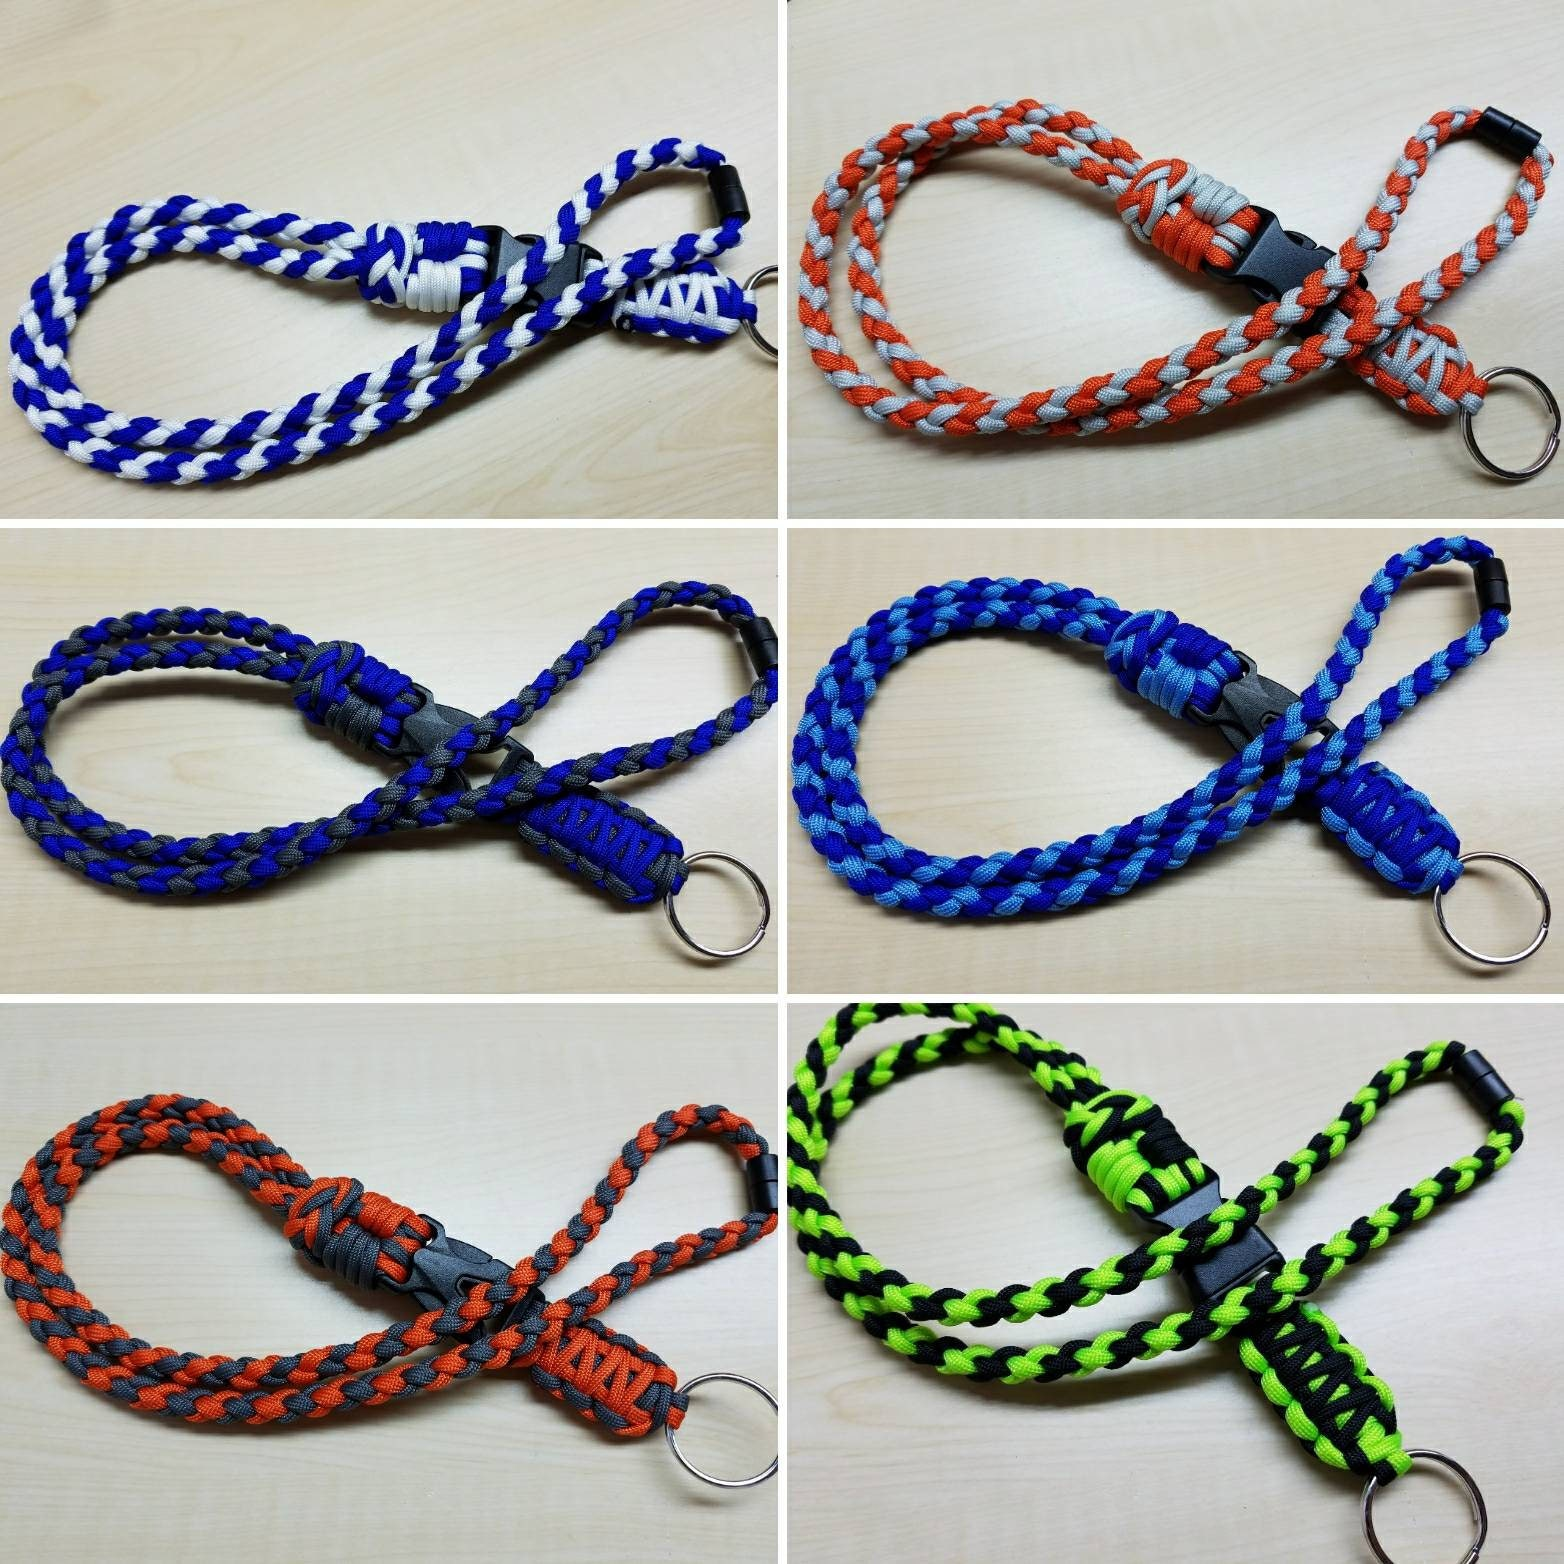 id badge middleweight paracord lanyard with neck breakaway buckle